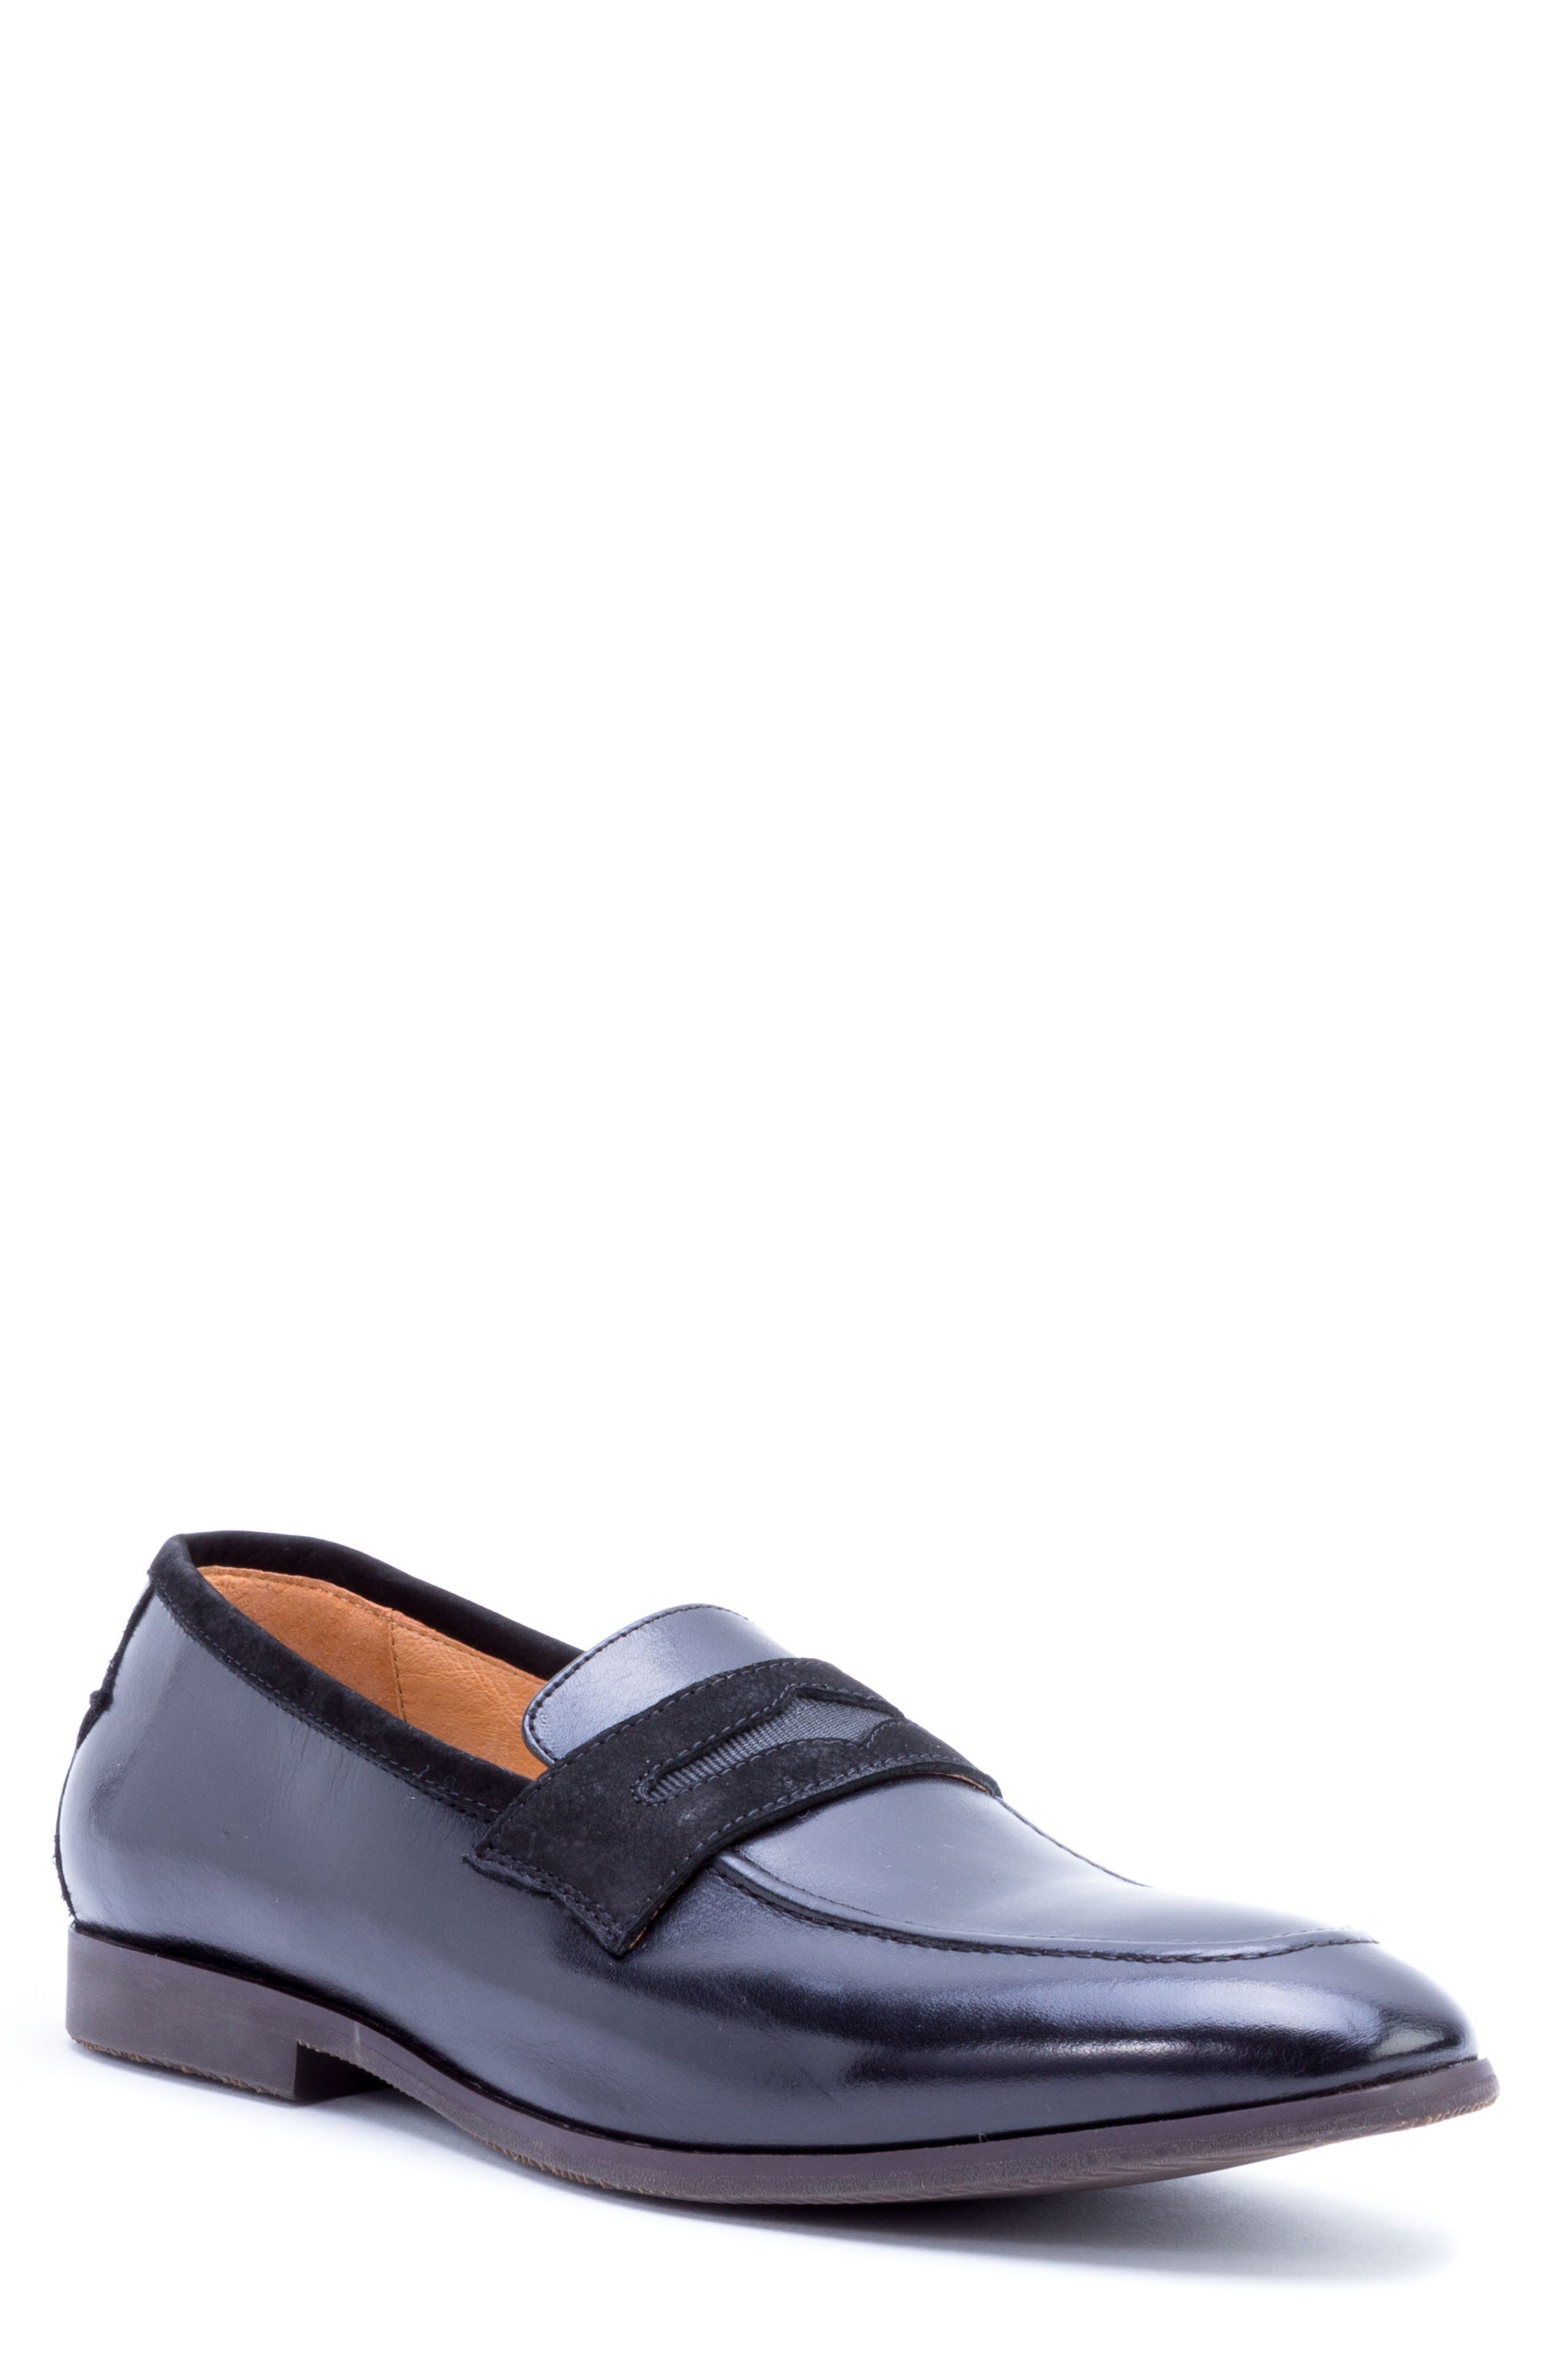 Apron Toe Penny Loafer,                             Main thumbnail 1, color,                             001